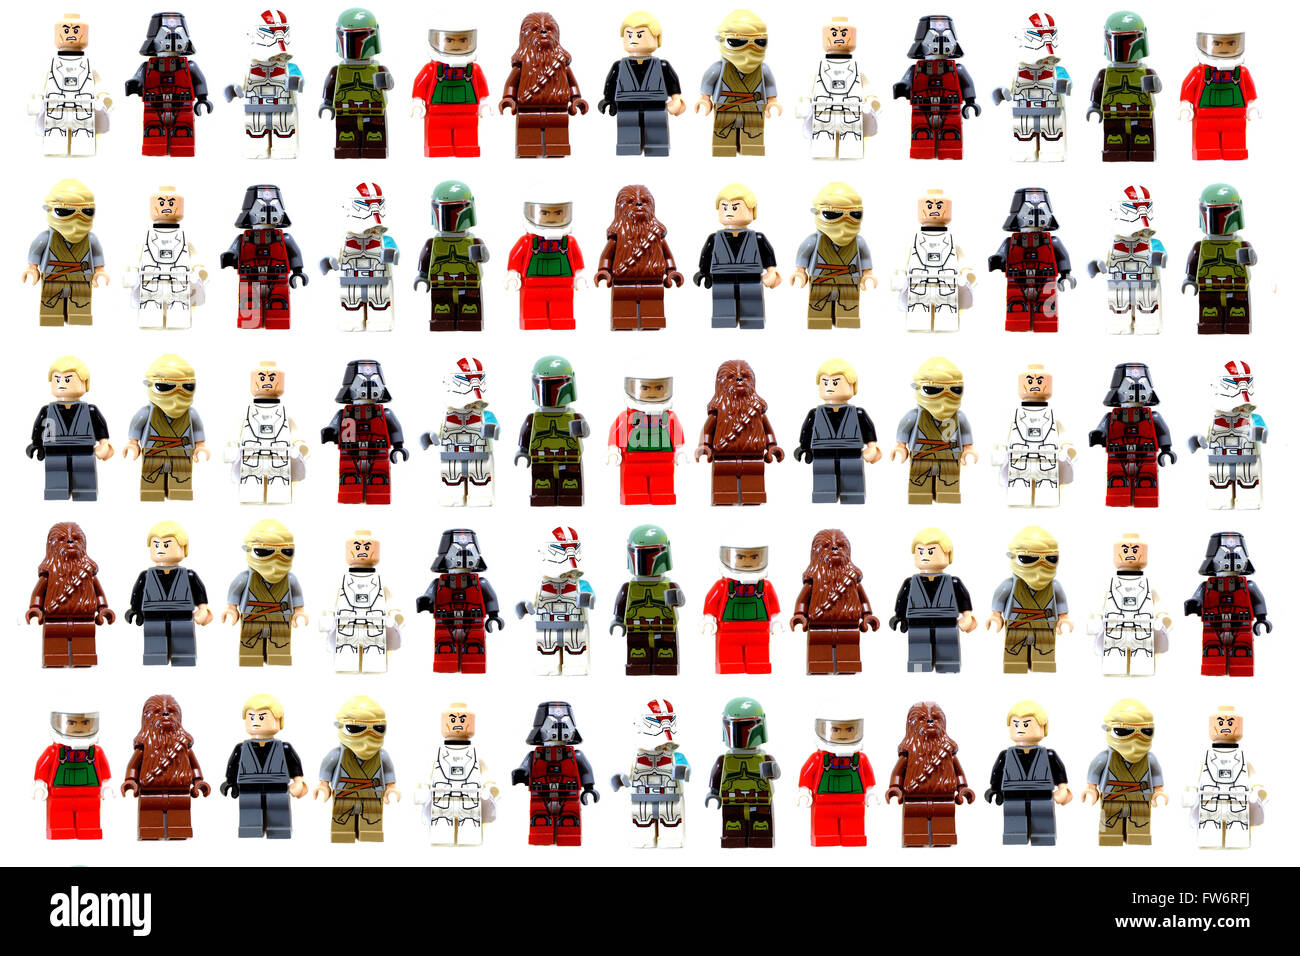 lego star wars stock photos & lego star wars stock images - alamy